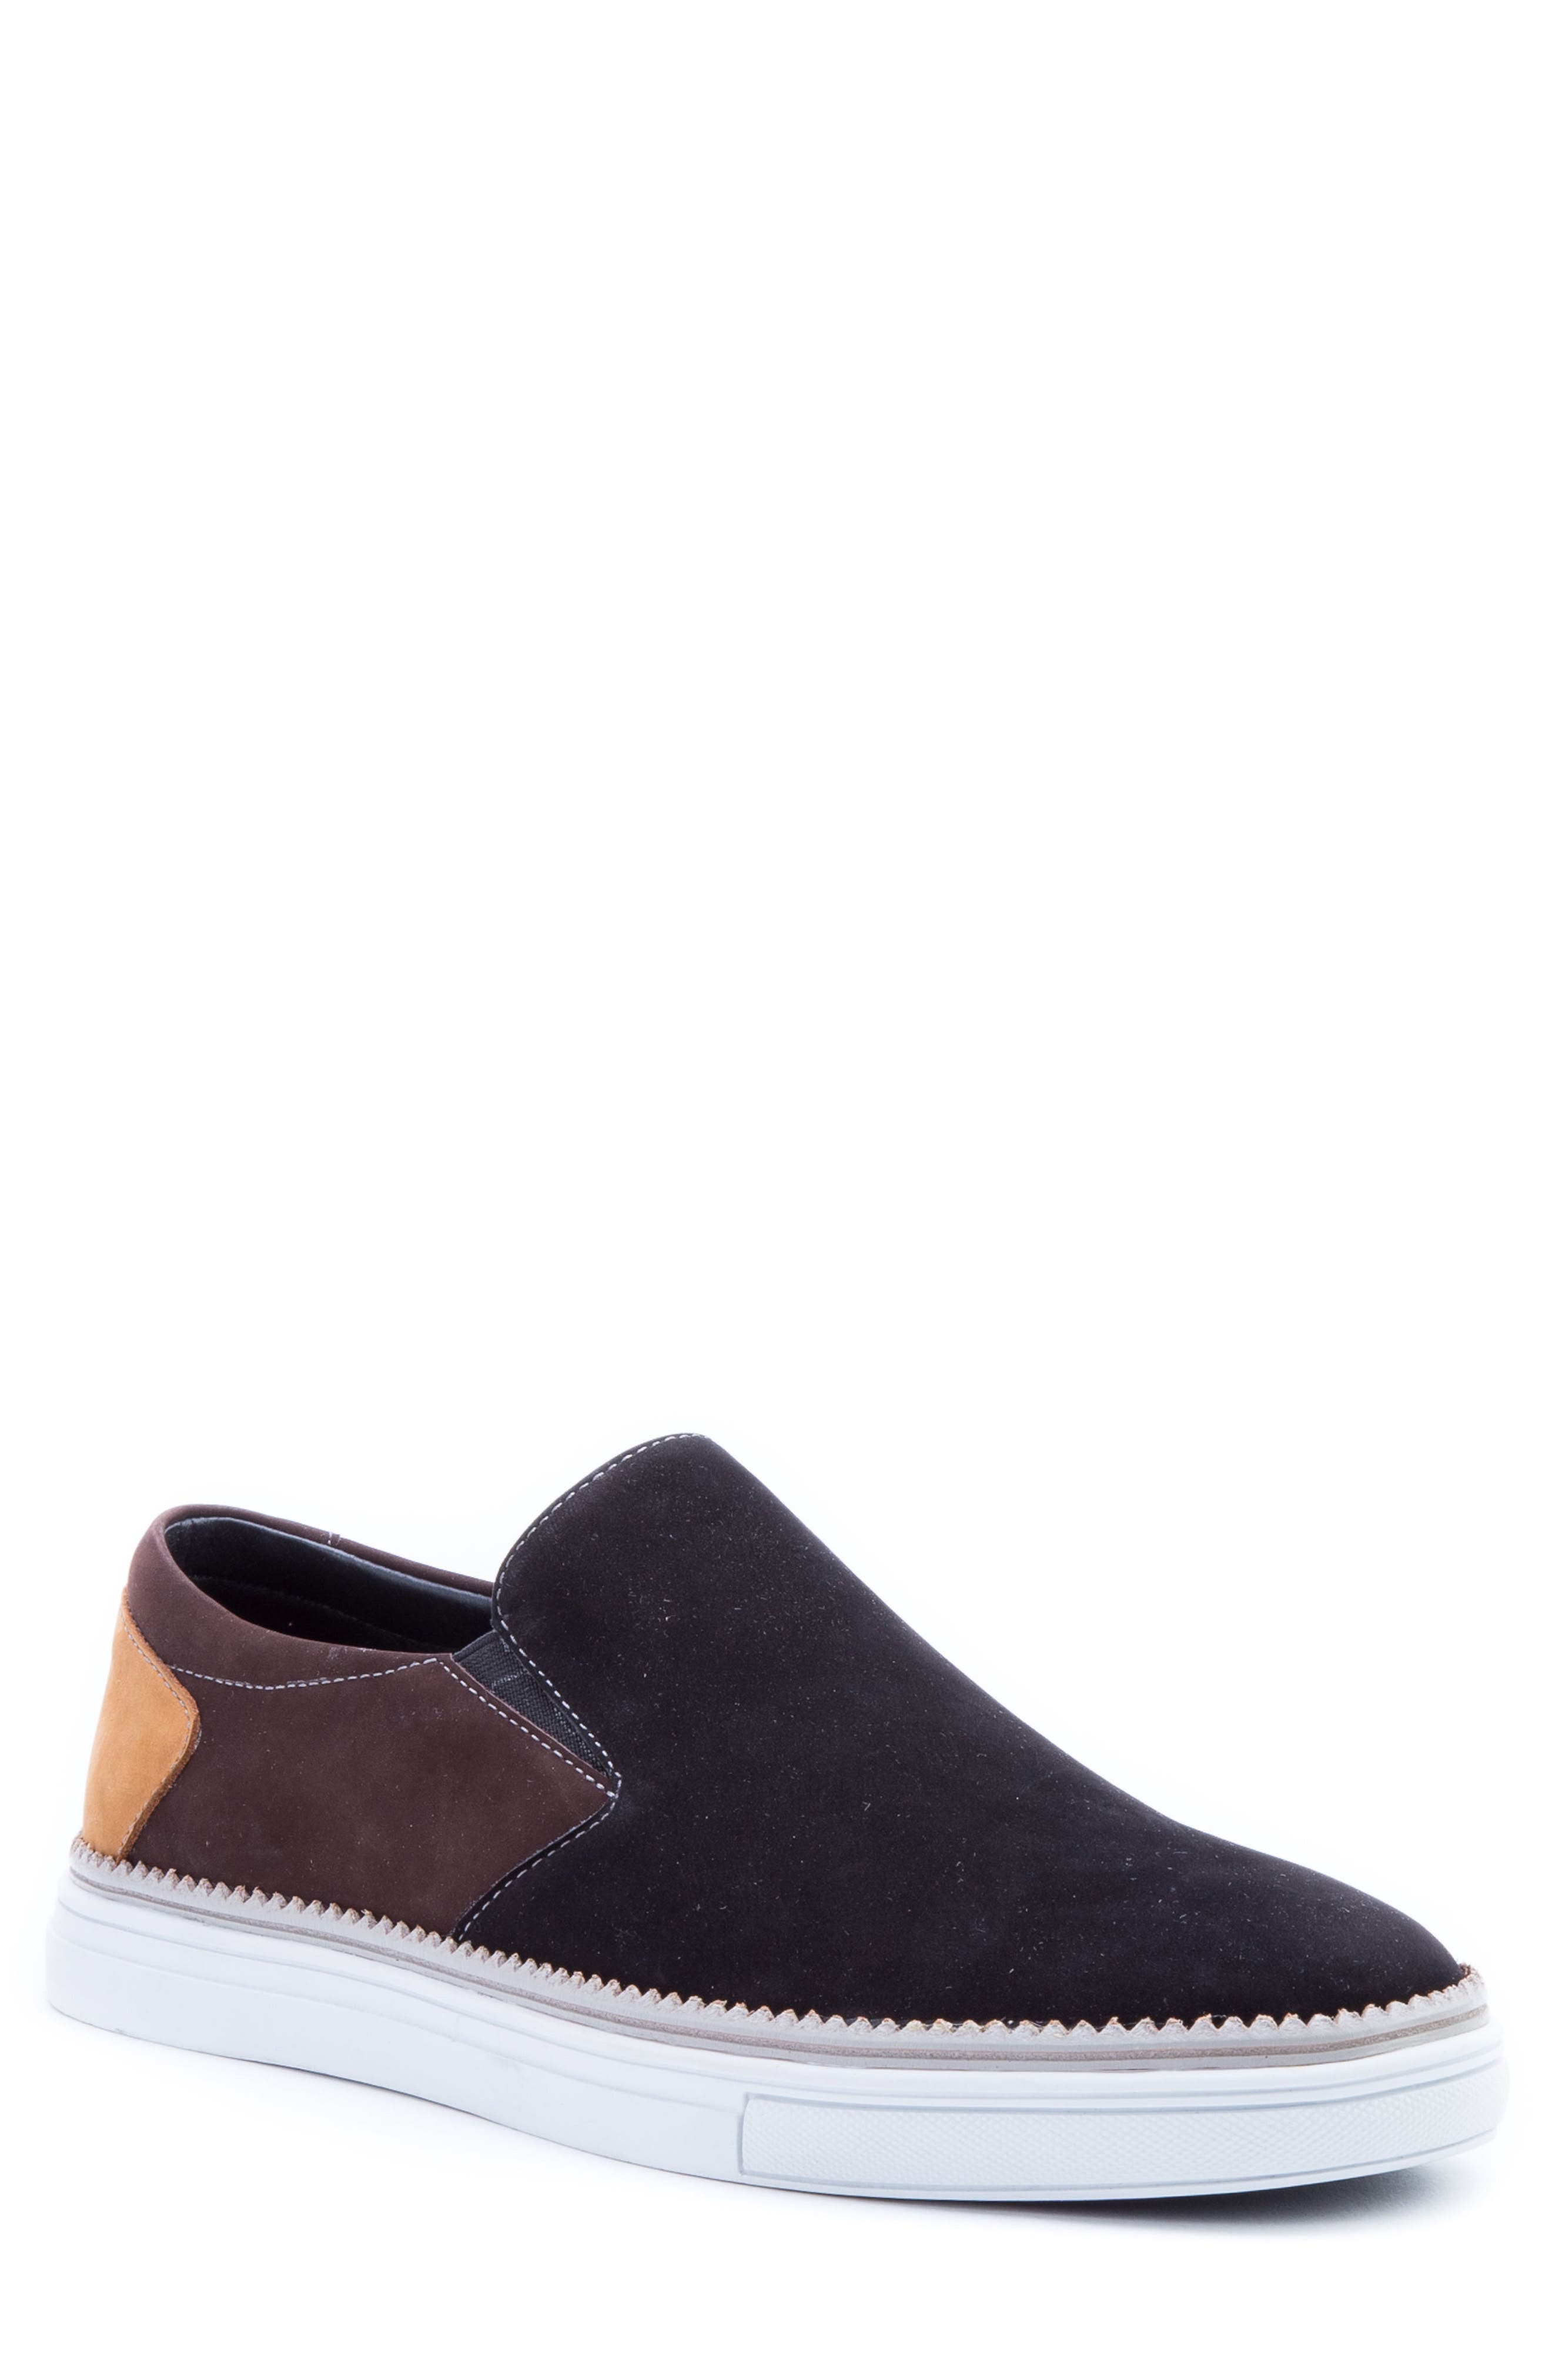 Rivera Colorblocked Slip-On Sneaker,                         Main,                         color, BLACK SUEDE